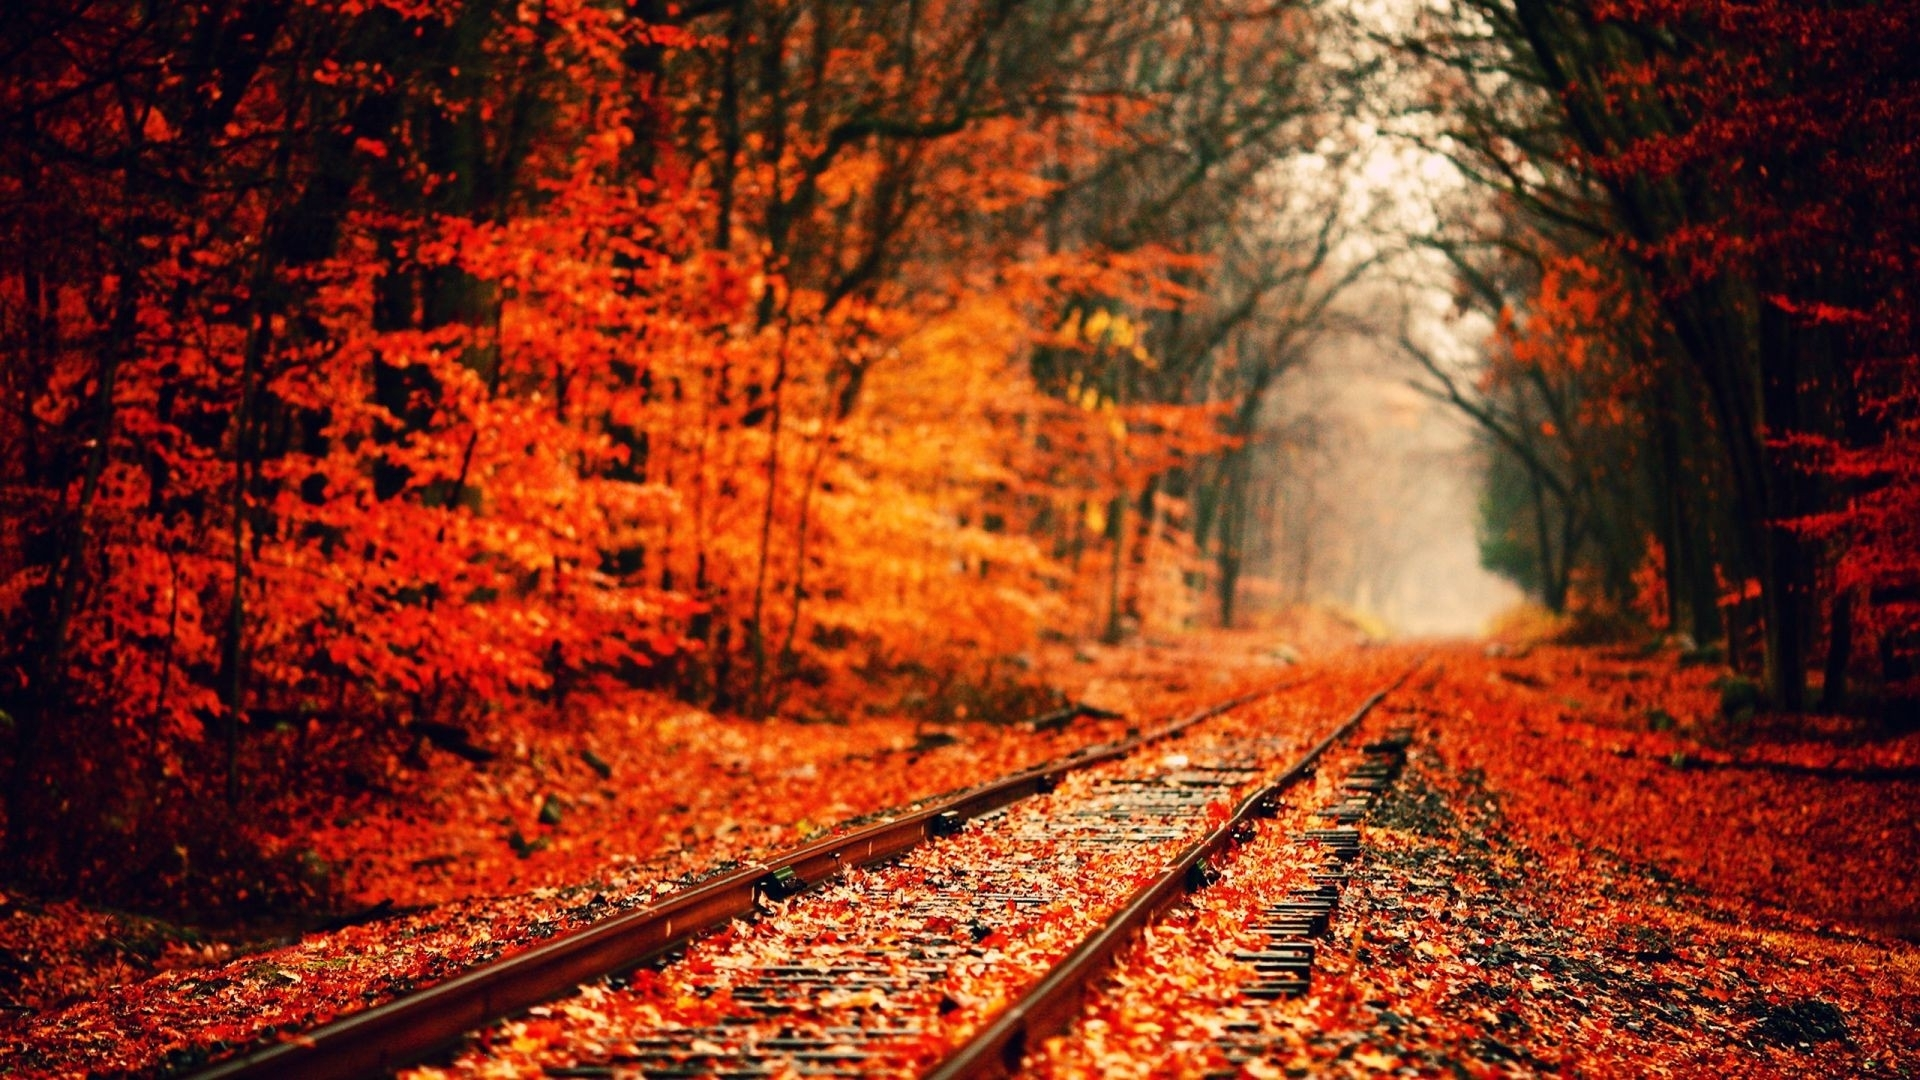 71+ fall backgrounds tumblr ·① download free cool hd backgrounds